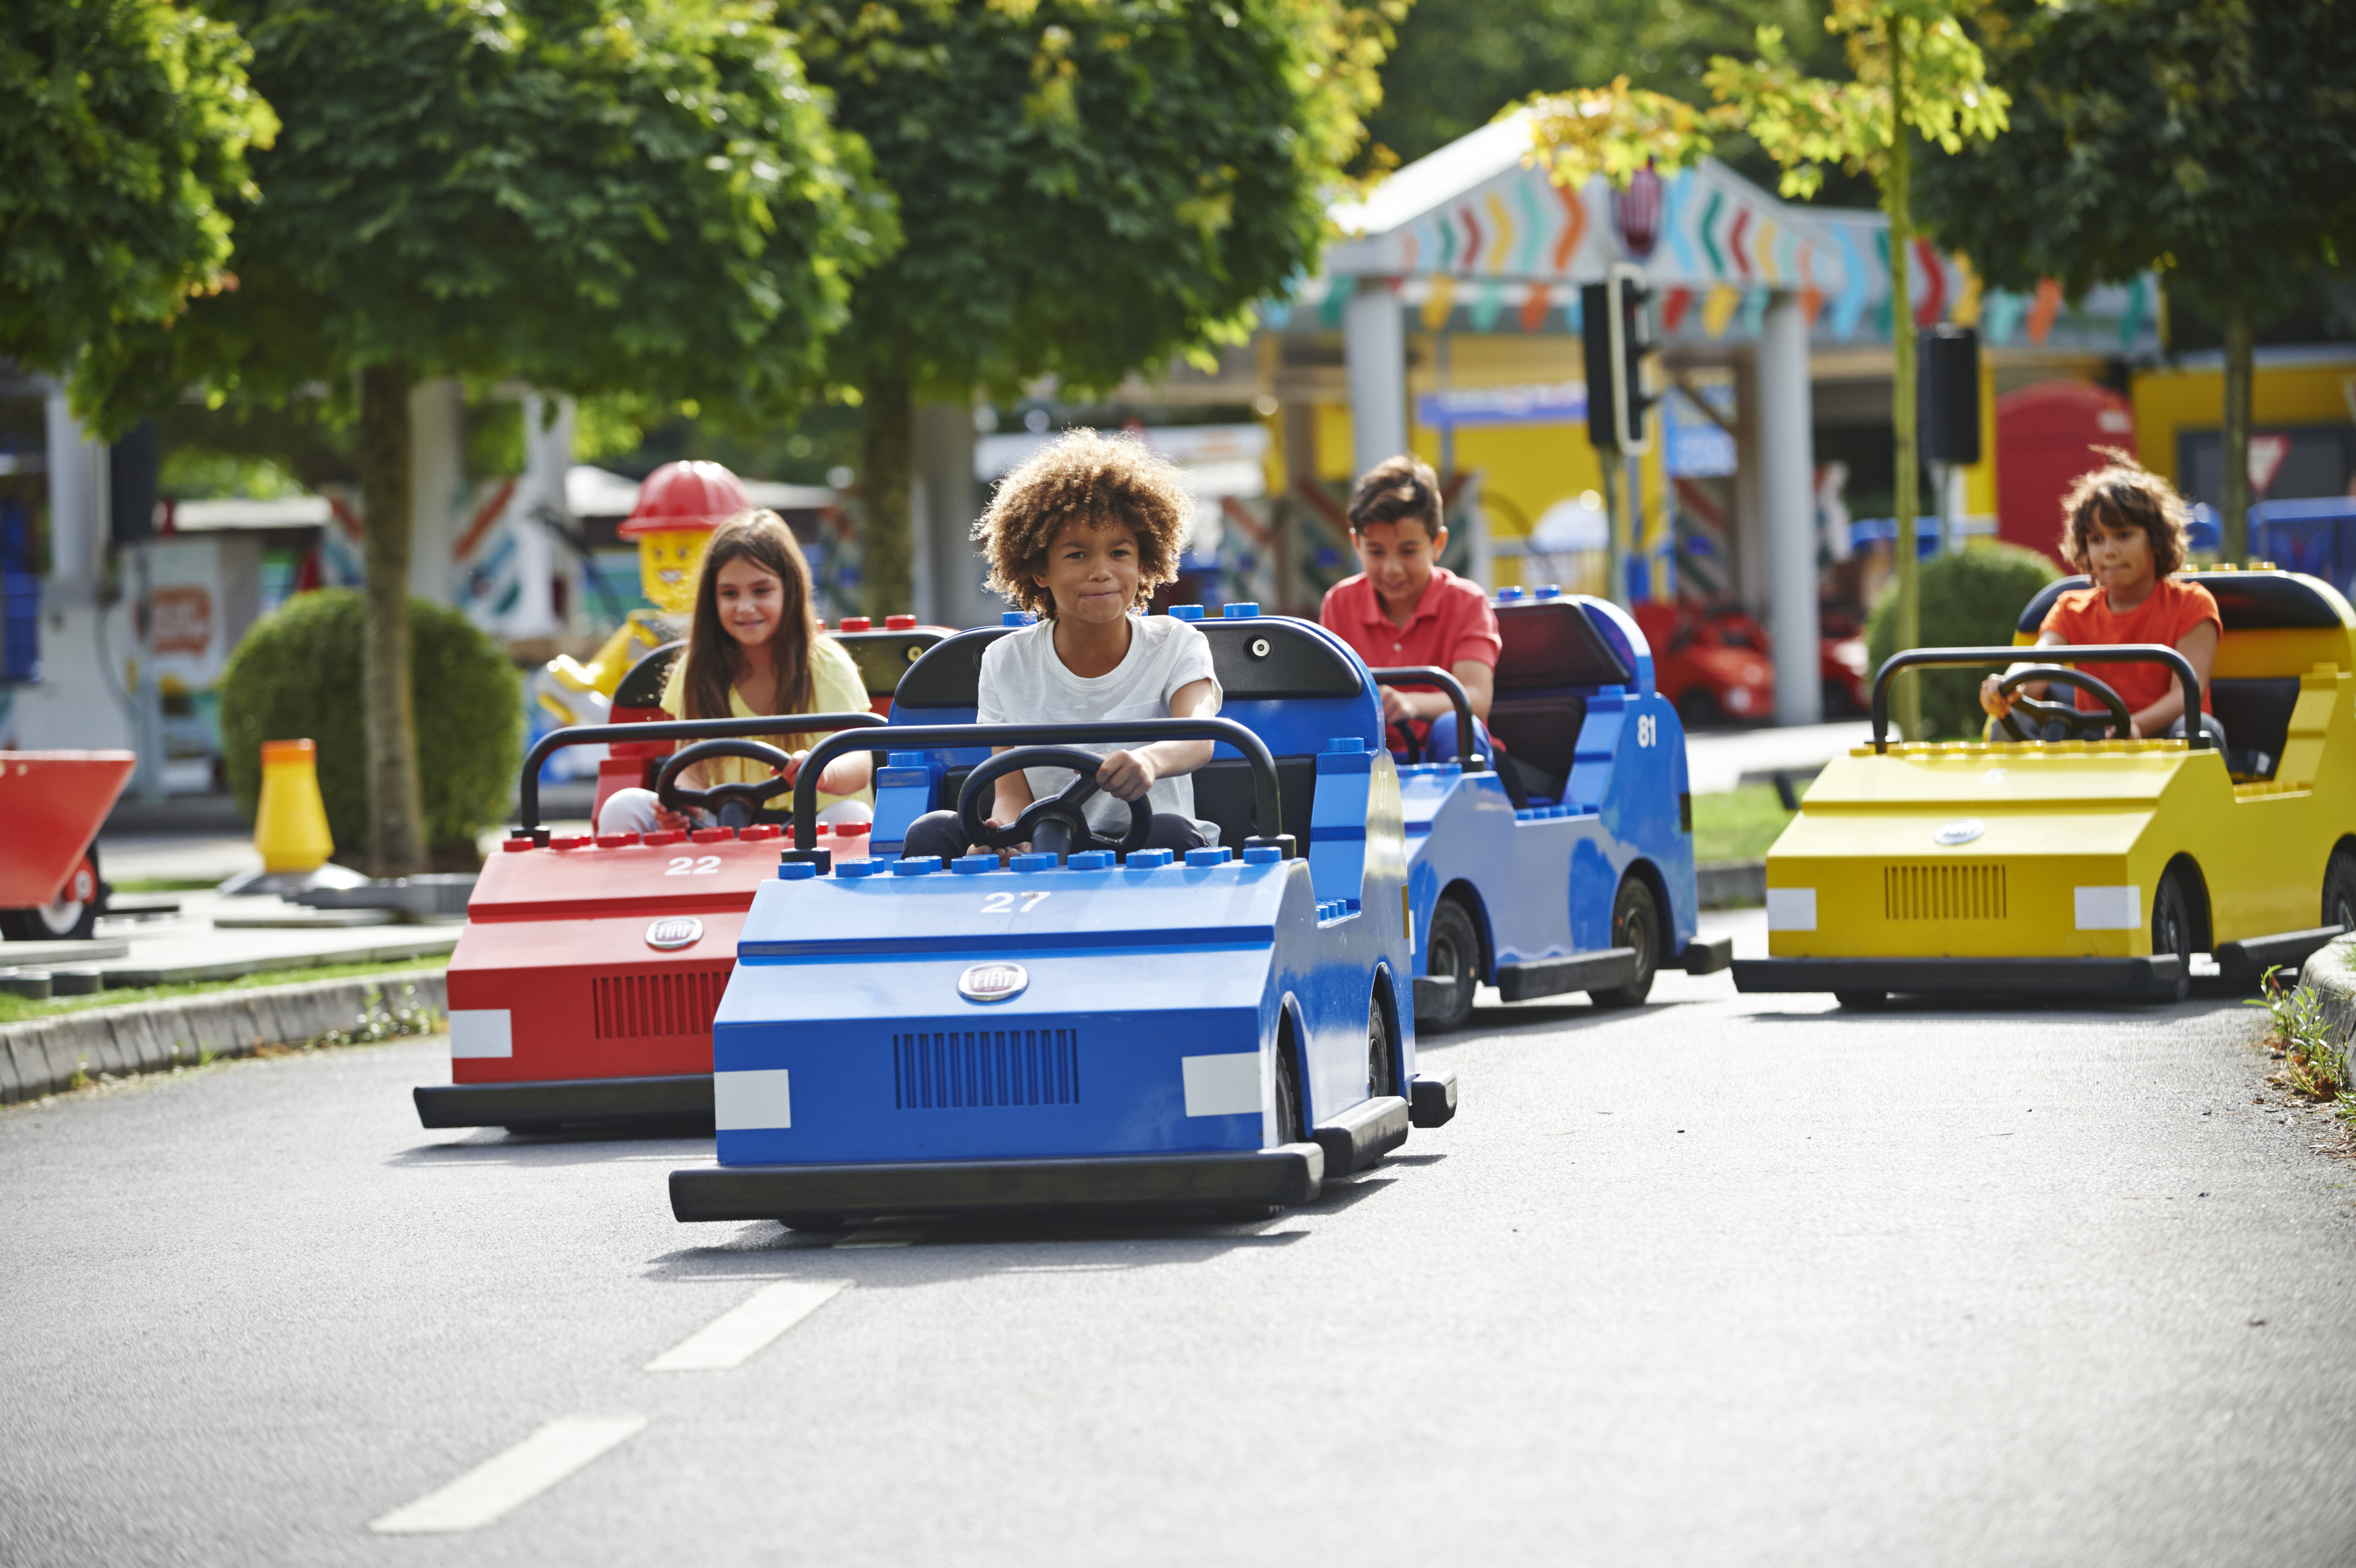 Driving School at LEGOLAND® Windsor Resort